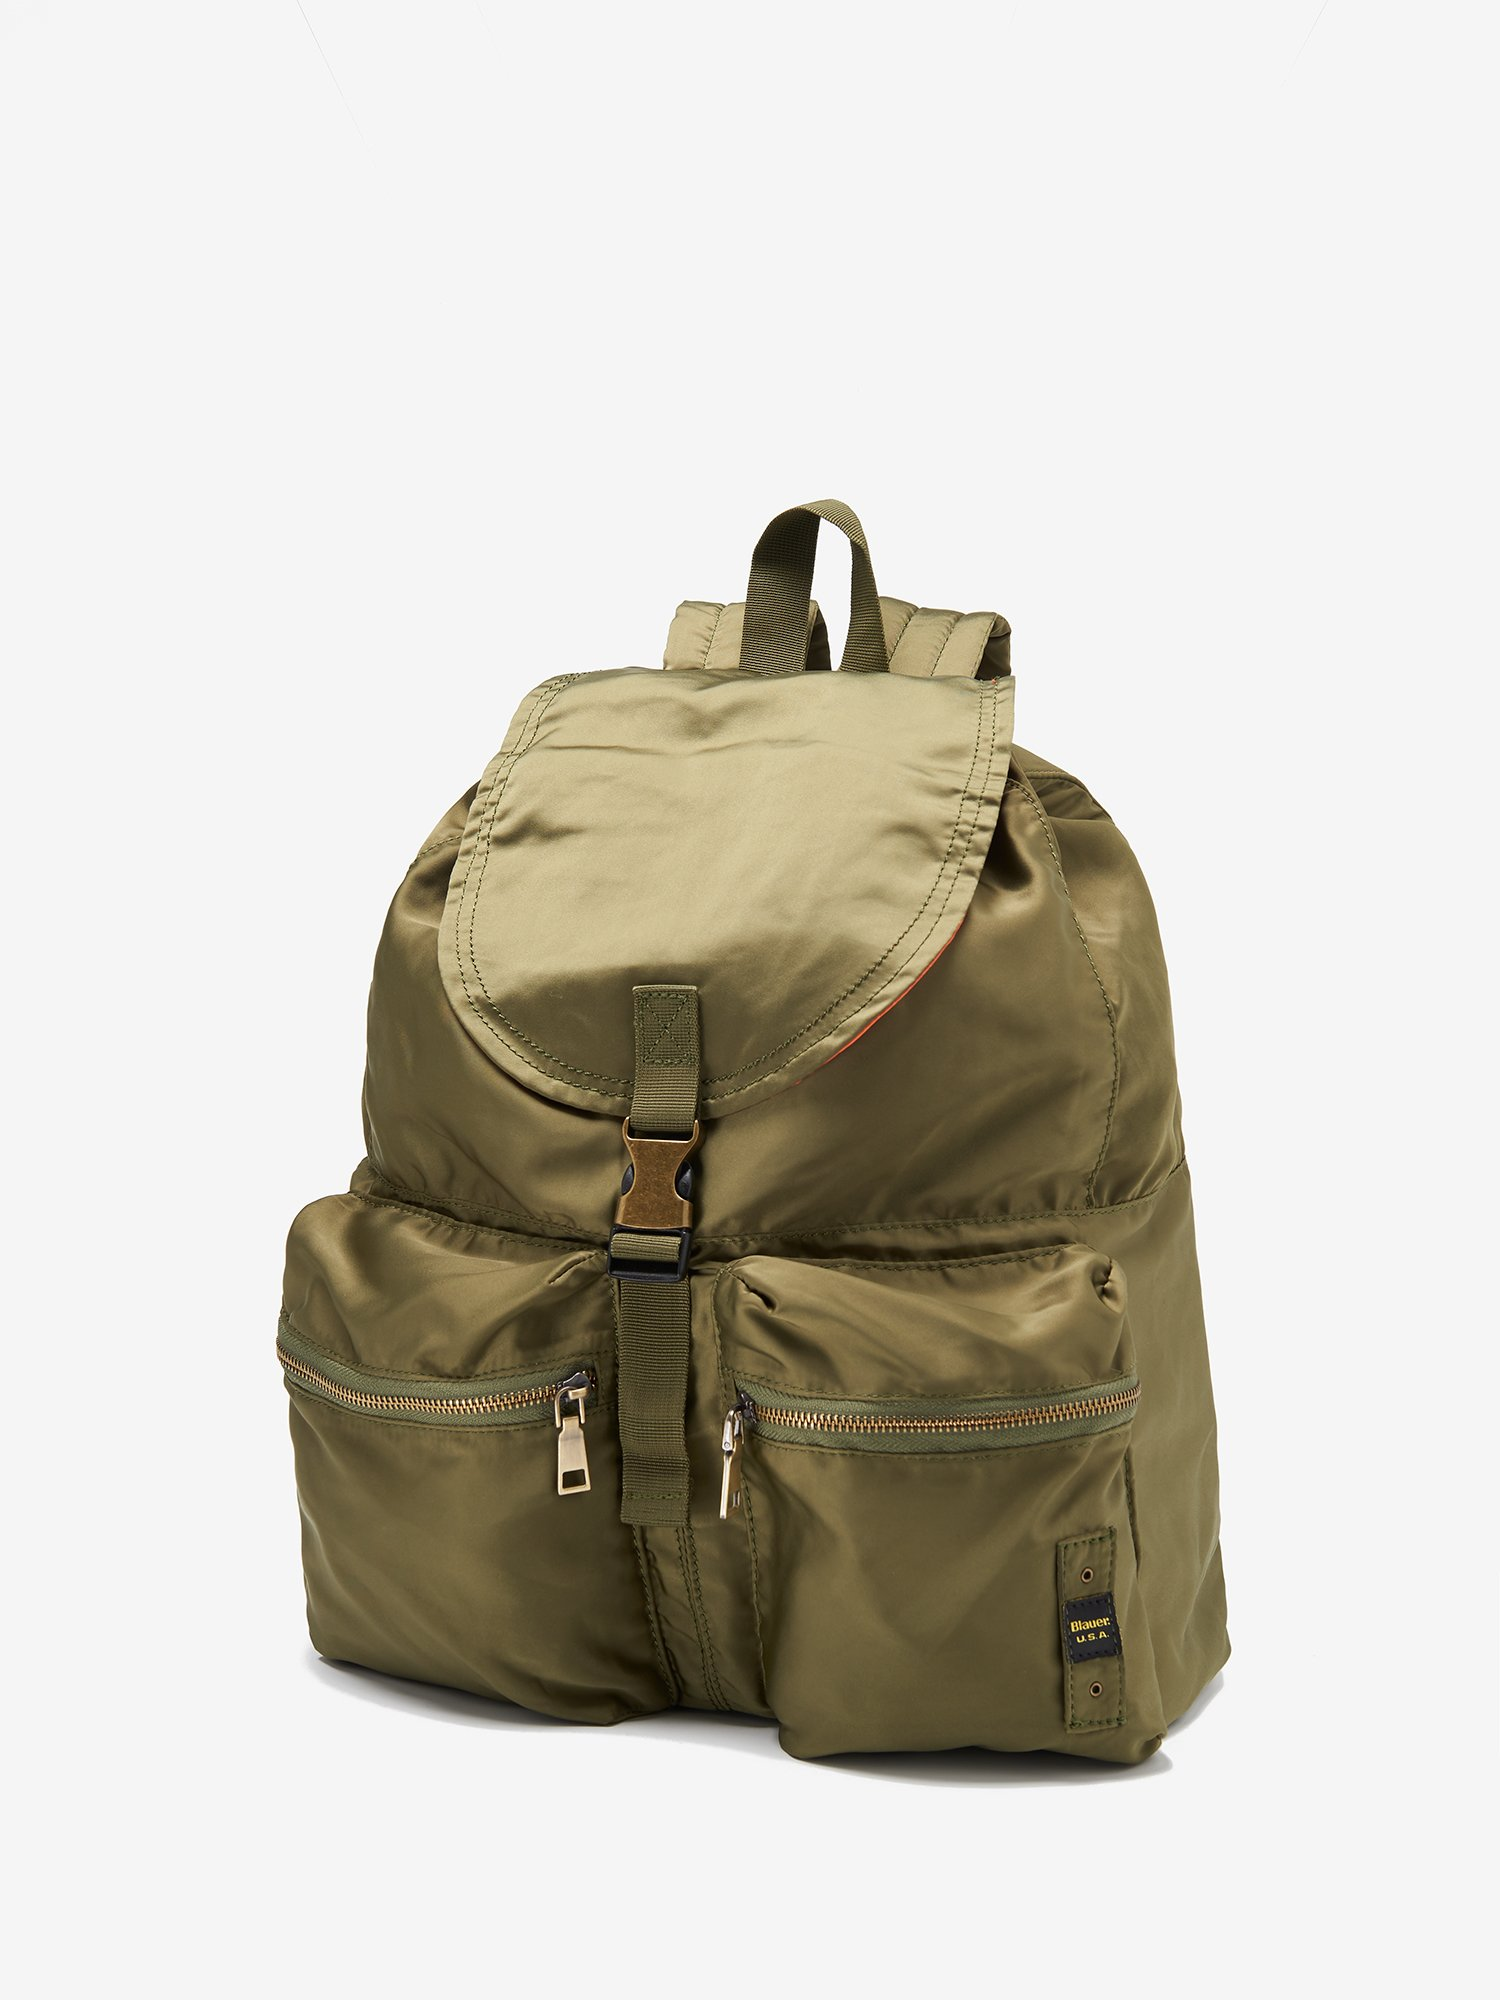 ULTRA-LIGHT SPORTY BACKPACK - Blauer